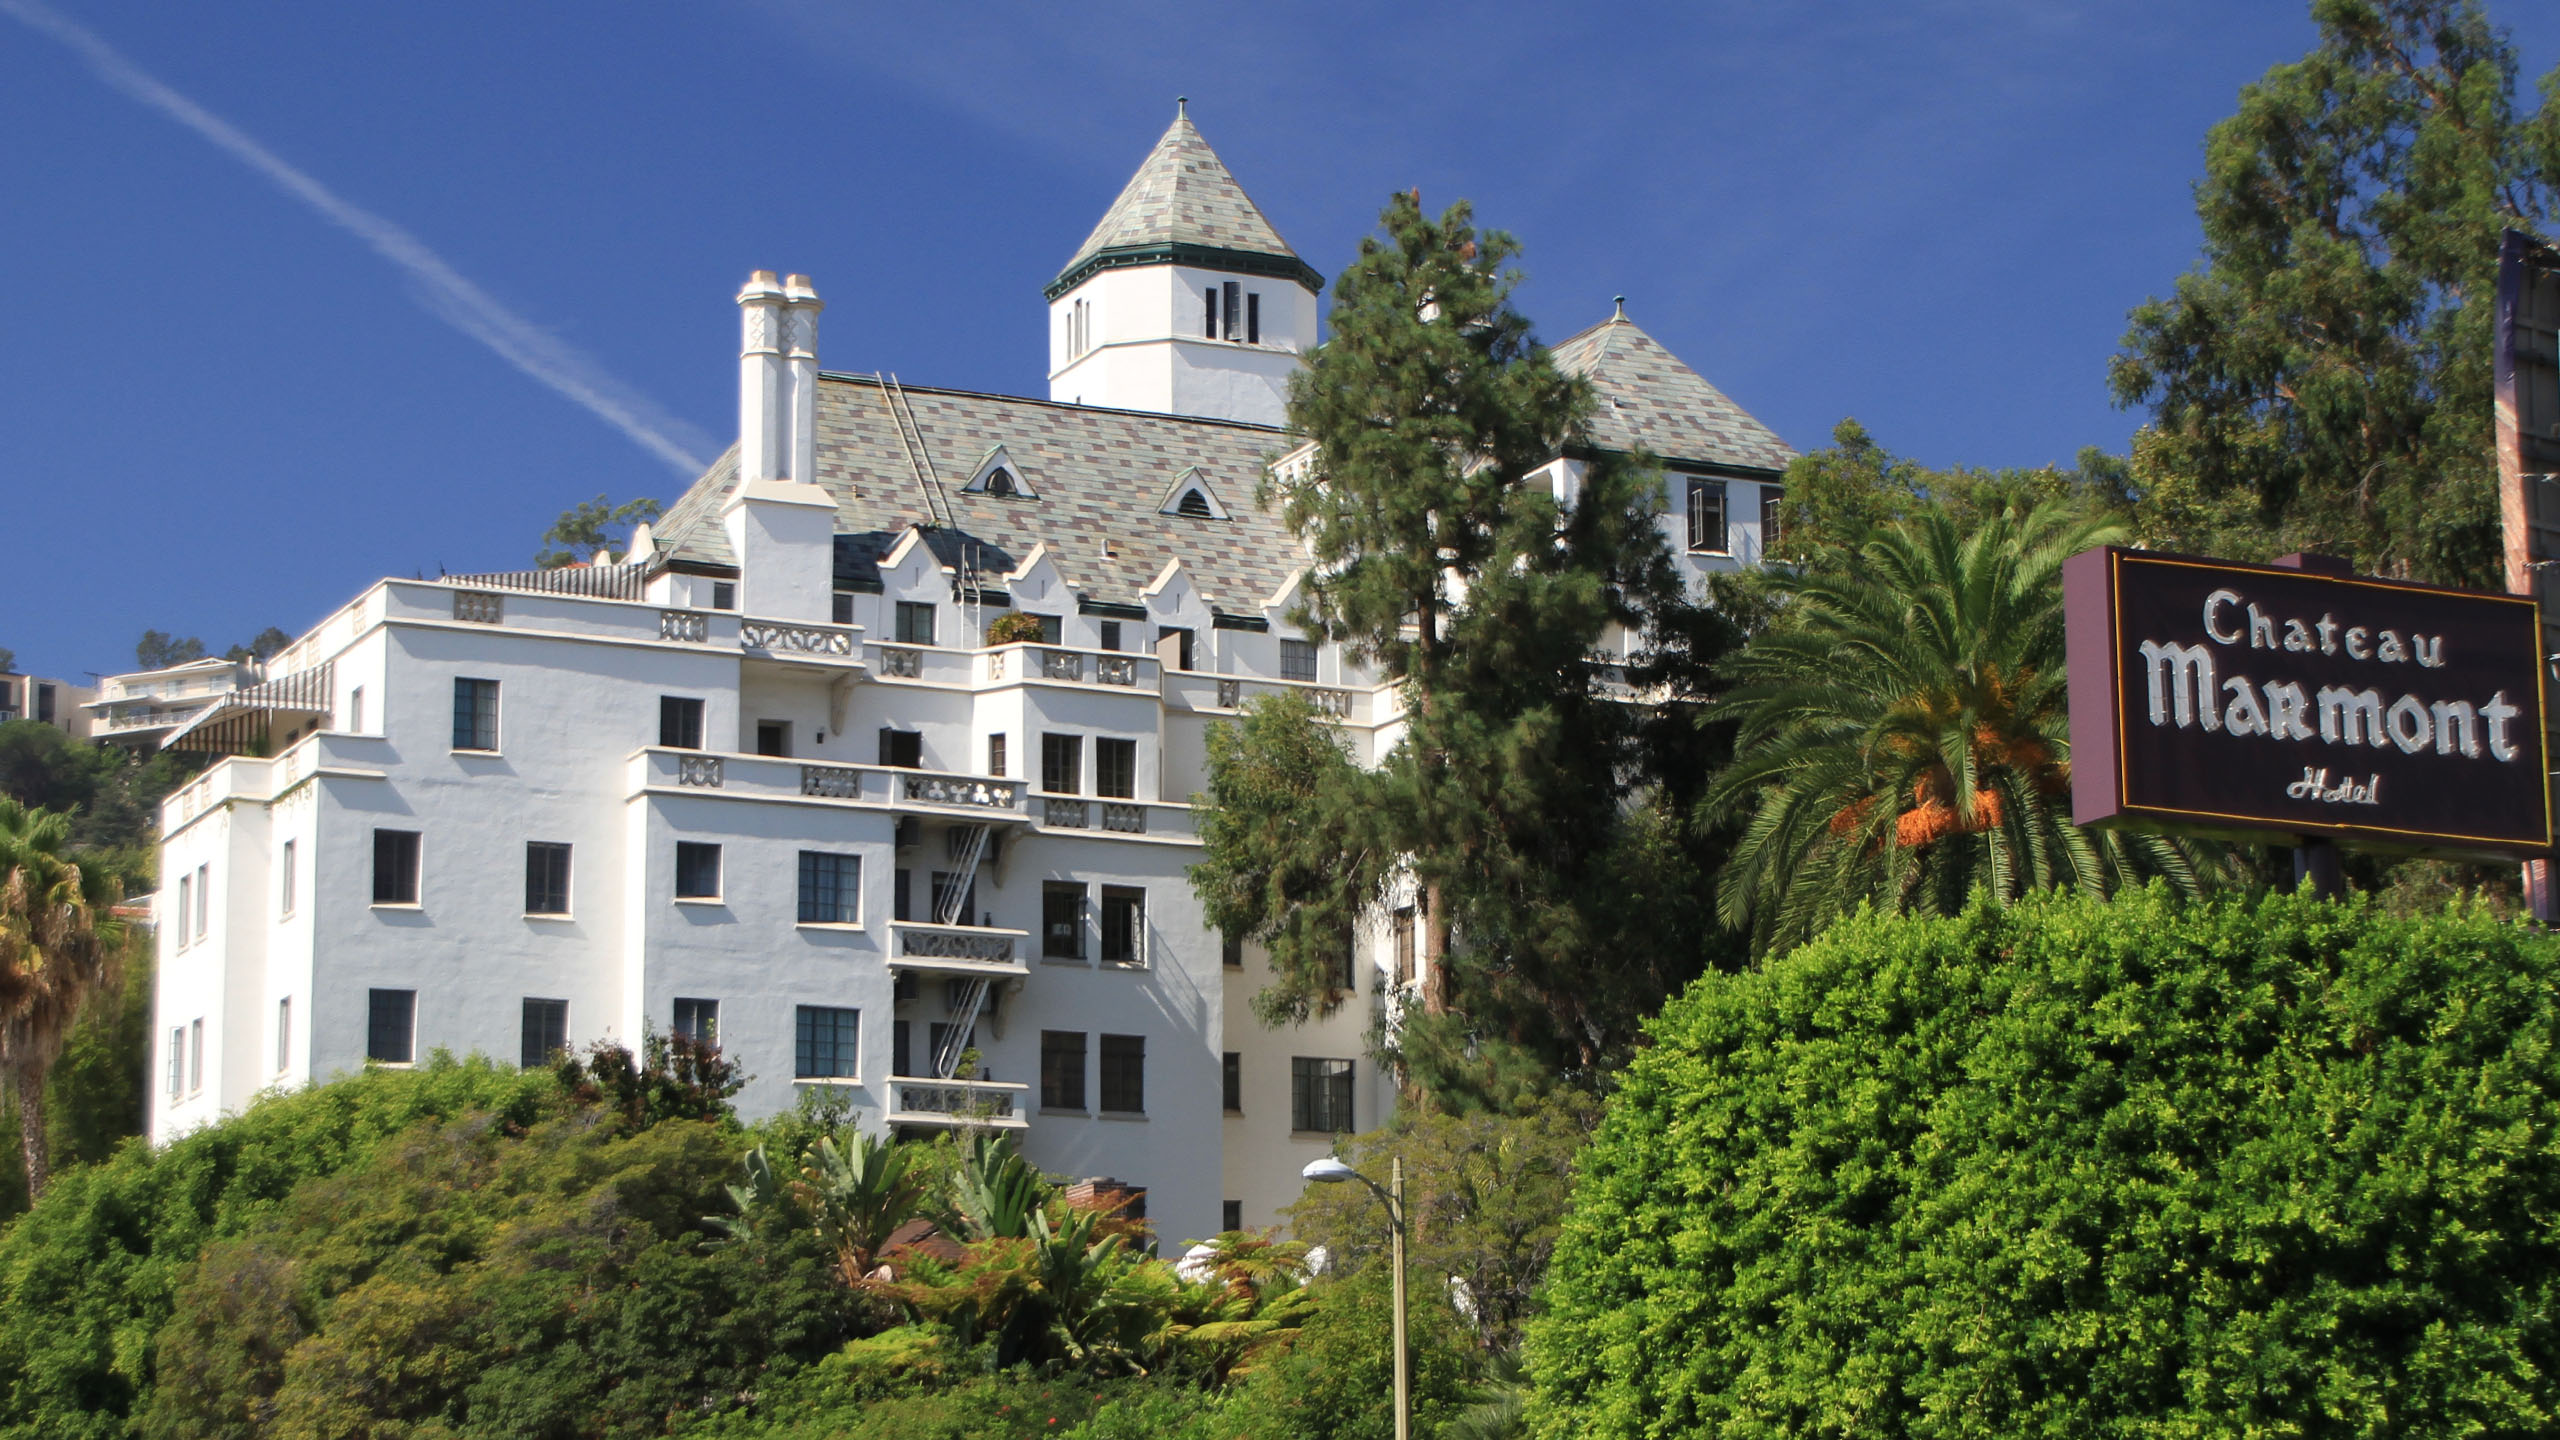 chateaumarmont01